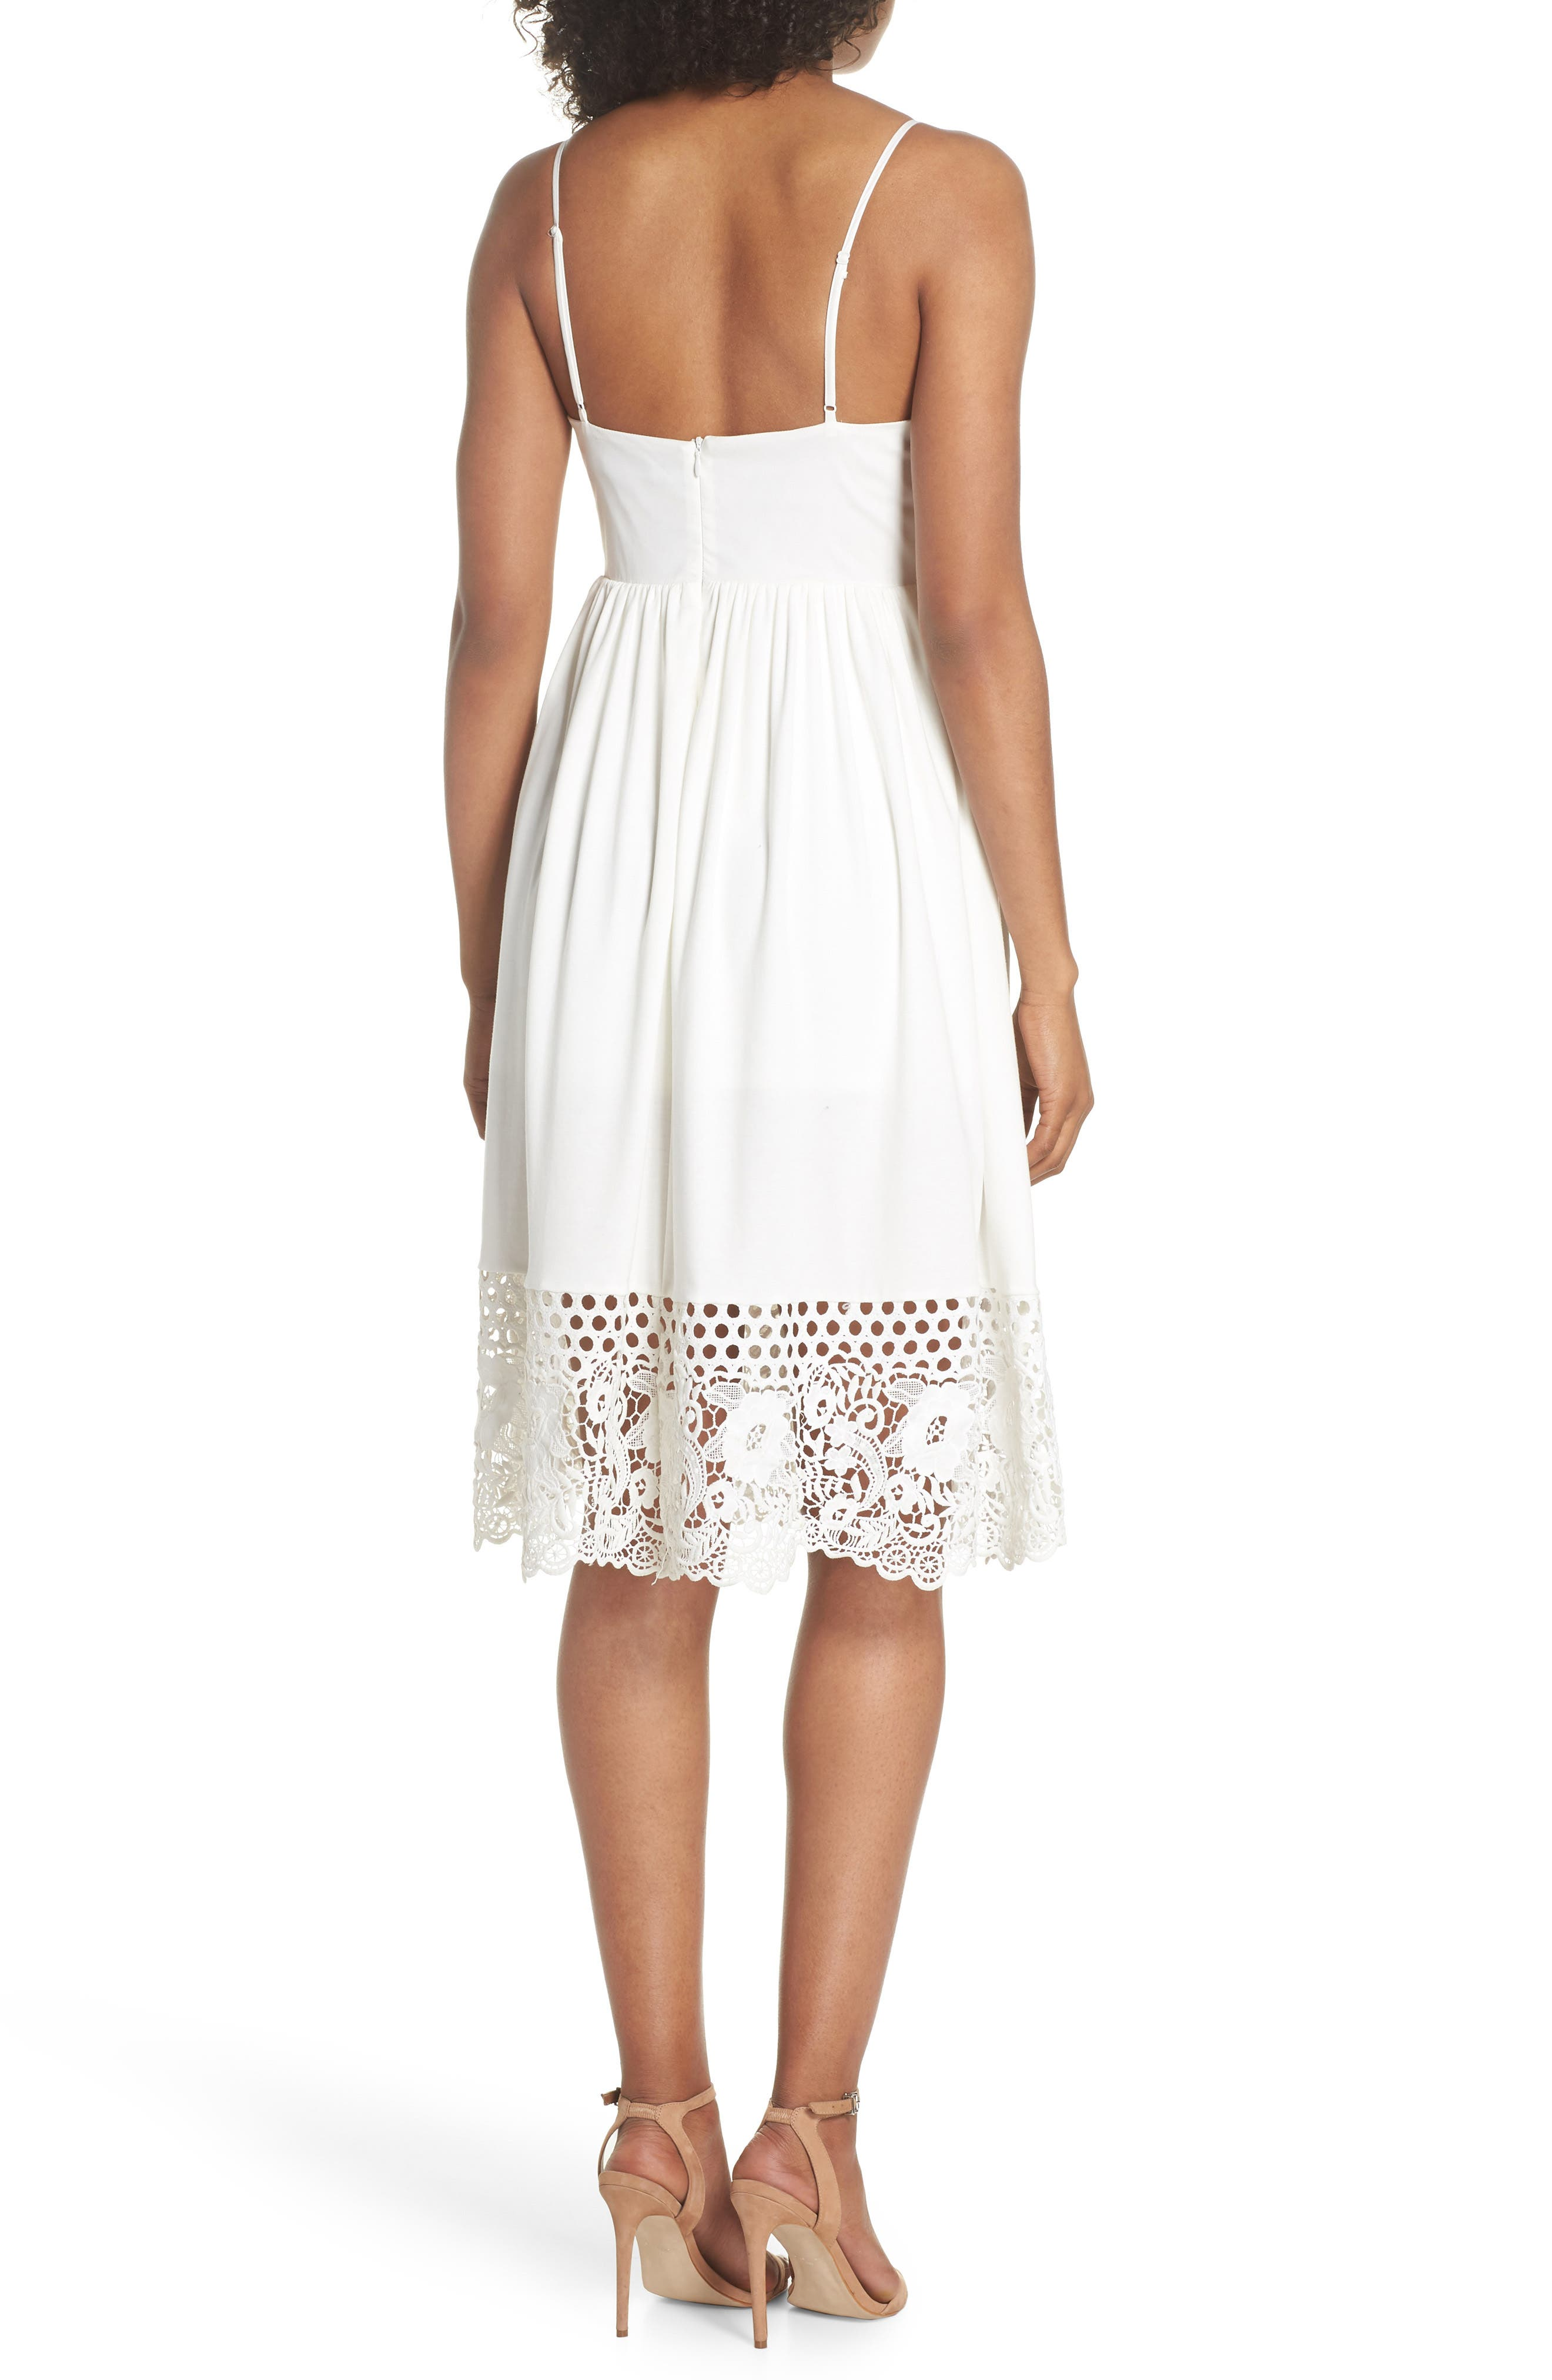 Salerno Lace Trim Jersey Dress,                             Alternate thumbnail 2, color,                             Summer White/ Summer White